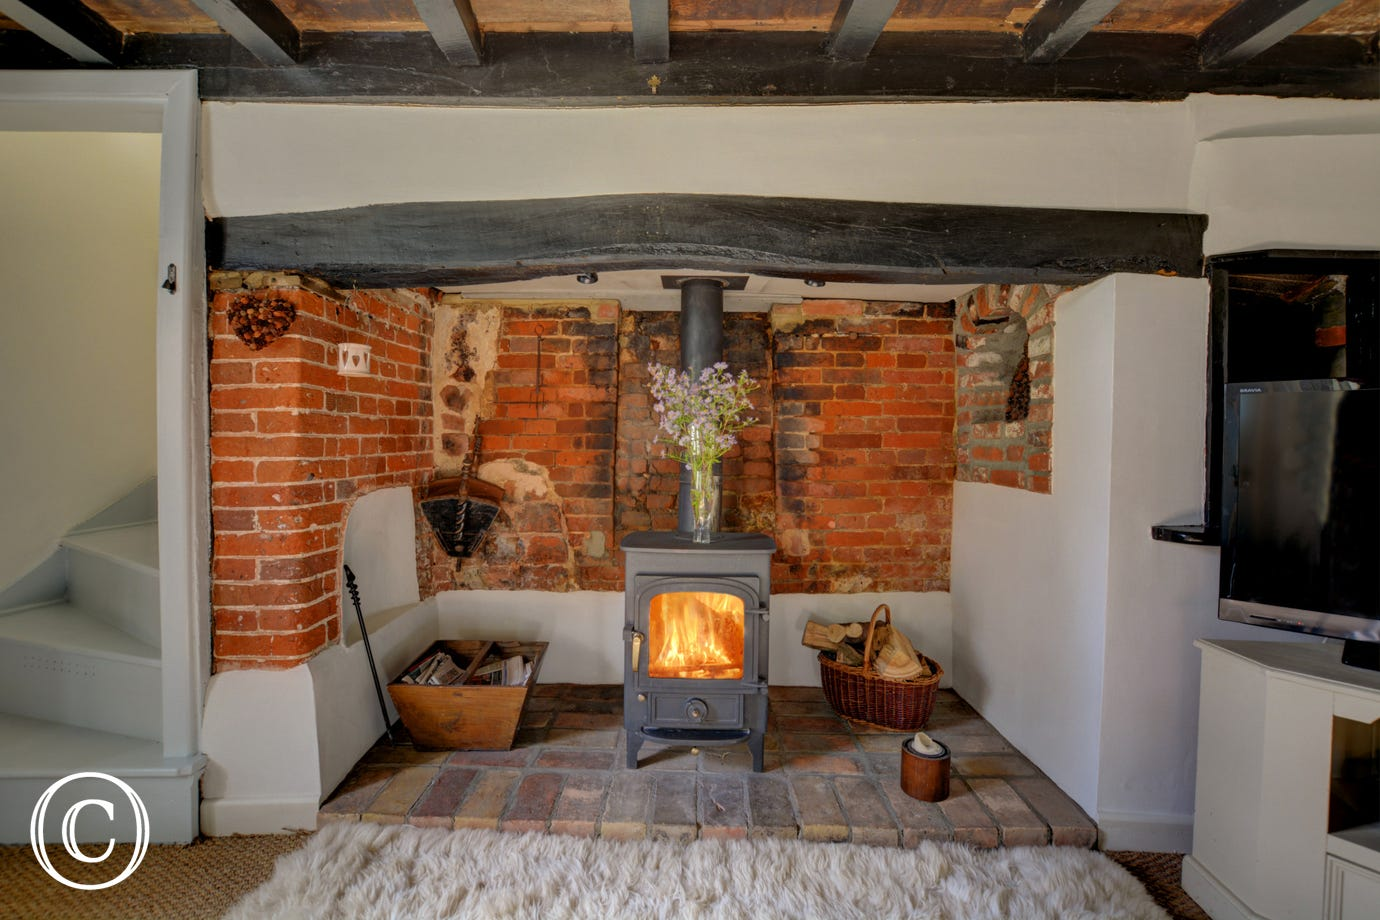 Woodburner in the Sitting Room - perfect for warming your toes on a cold winters day